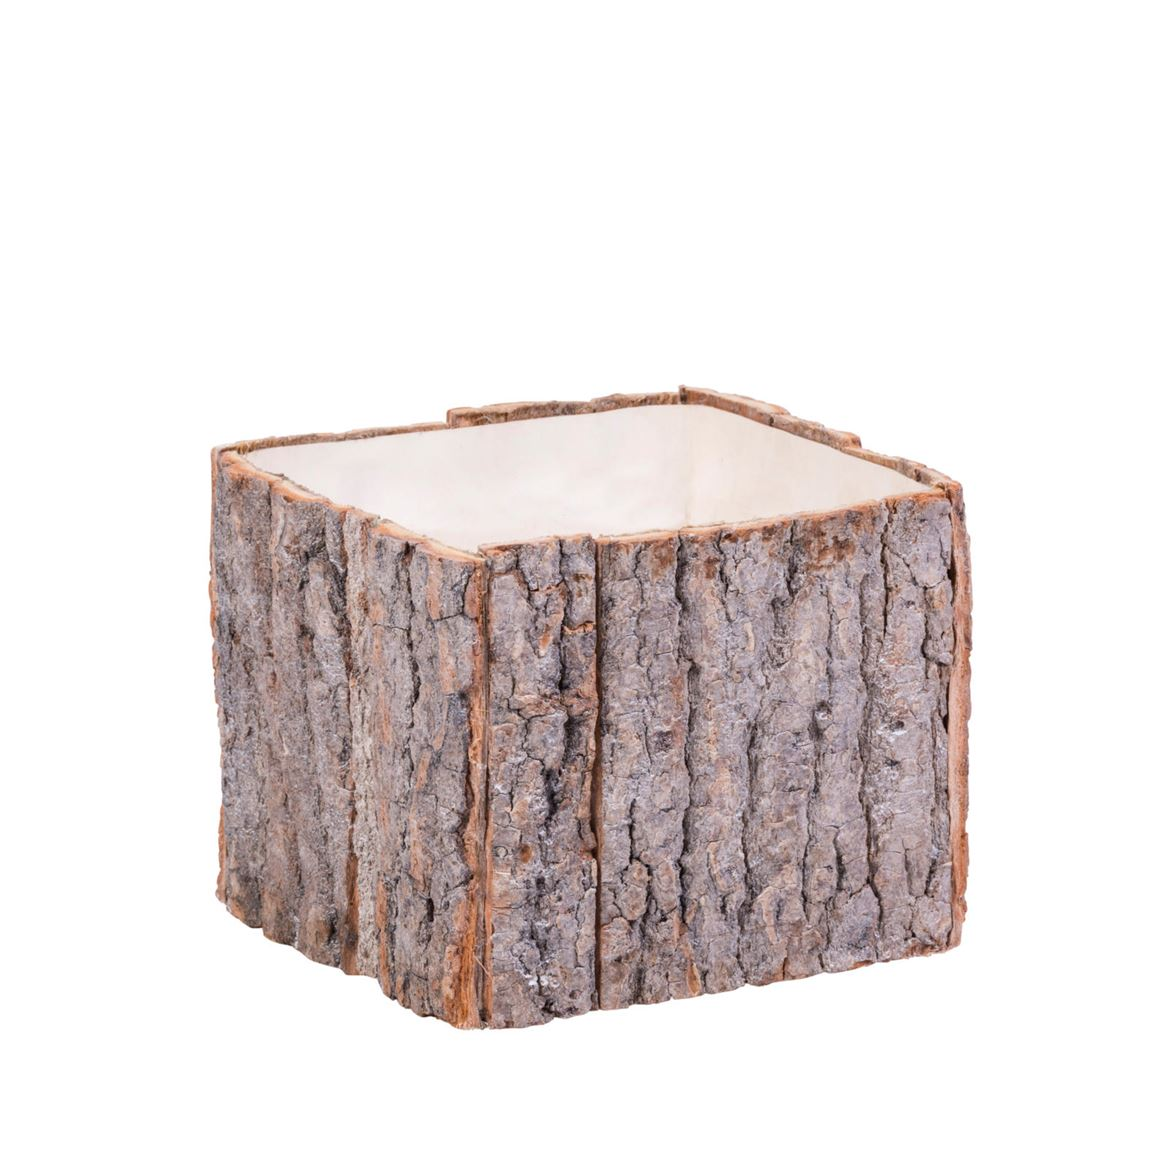 BARK Vaso natural H 13 x W 13 x D 13 cm_bark-vaso-natural-h-13-x-w-13-x-d-13-cm